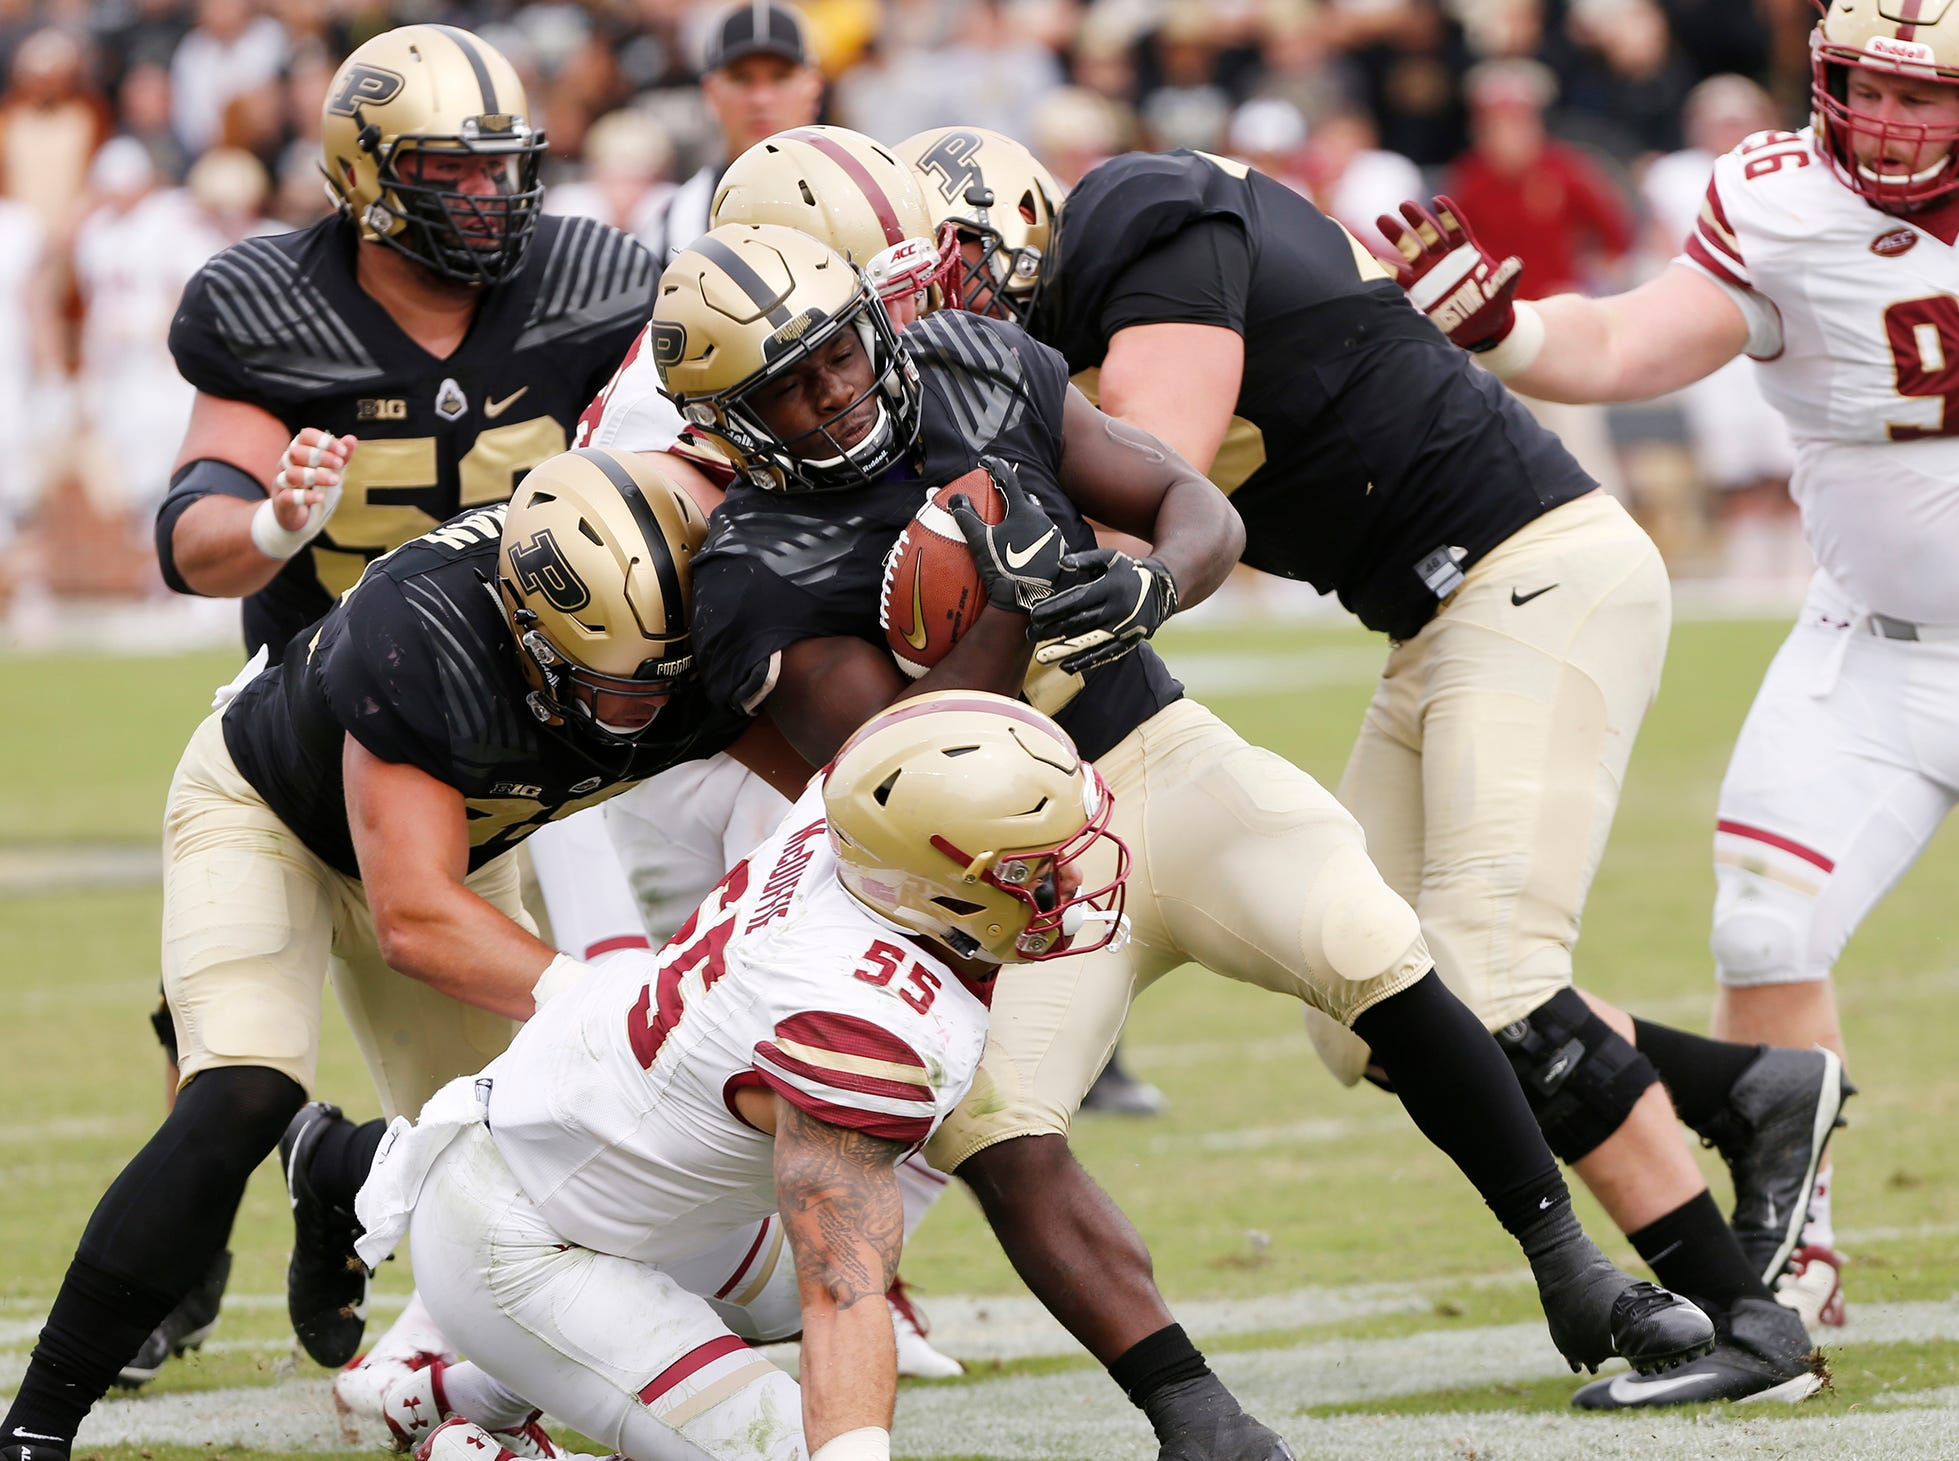 D. J. Knox with a second half carry against Boston College Saturday, September 22, 2018, in Ross-Ade Stadium. Purdue defeated Boston College 30-13.